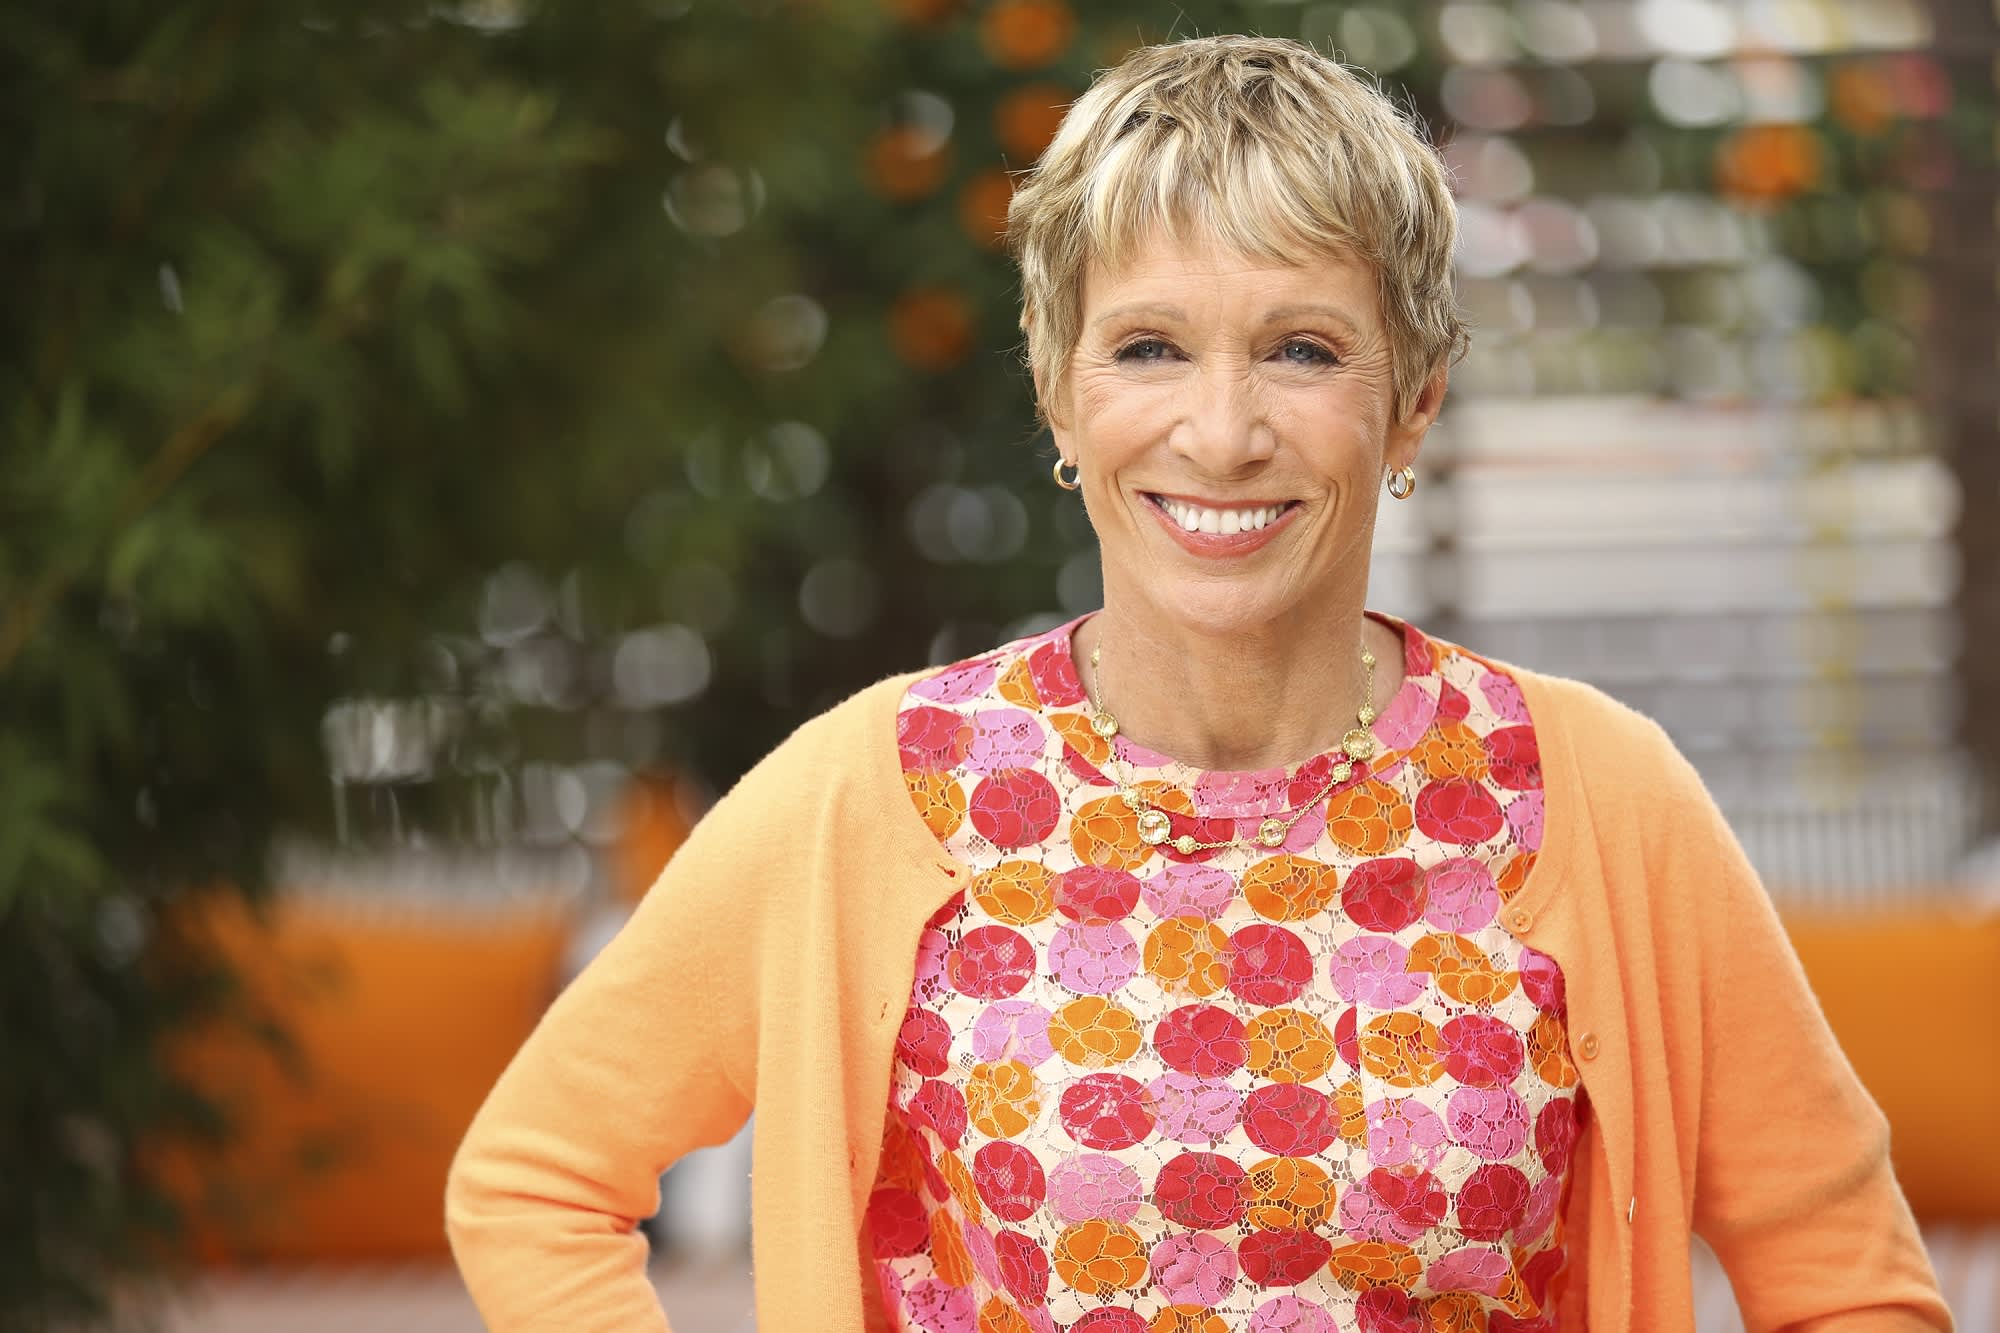 'Shark Tank' investor Barbara Corcoran: 'Not every side hustle is a business' — how to ensure yours can make money